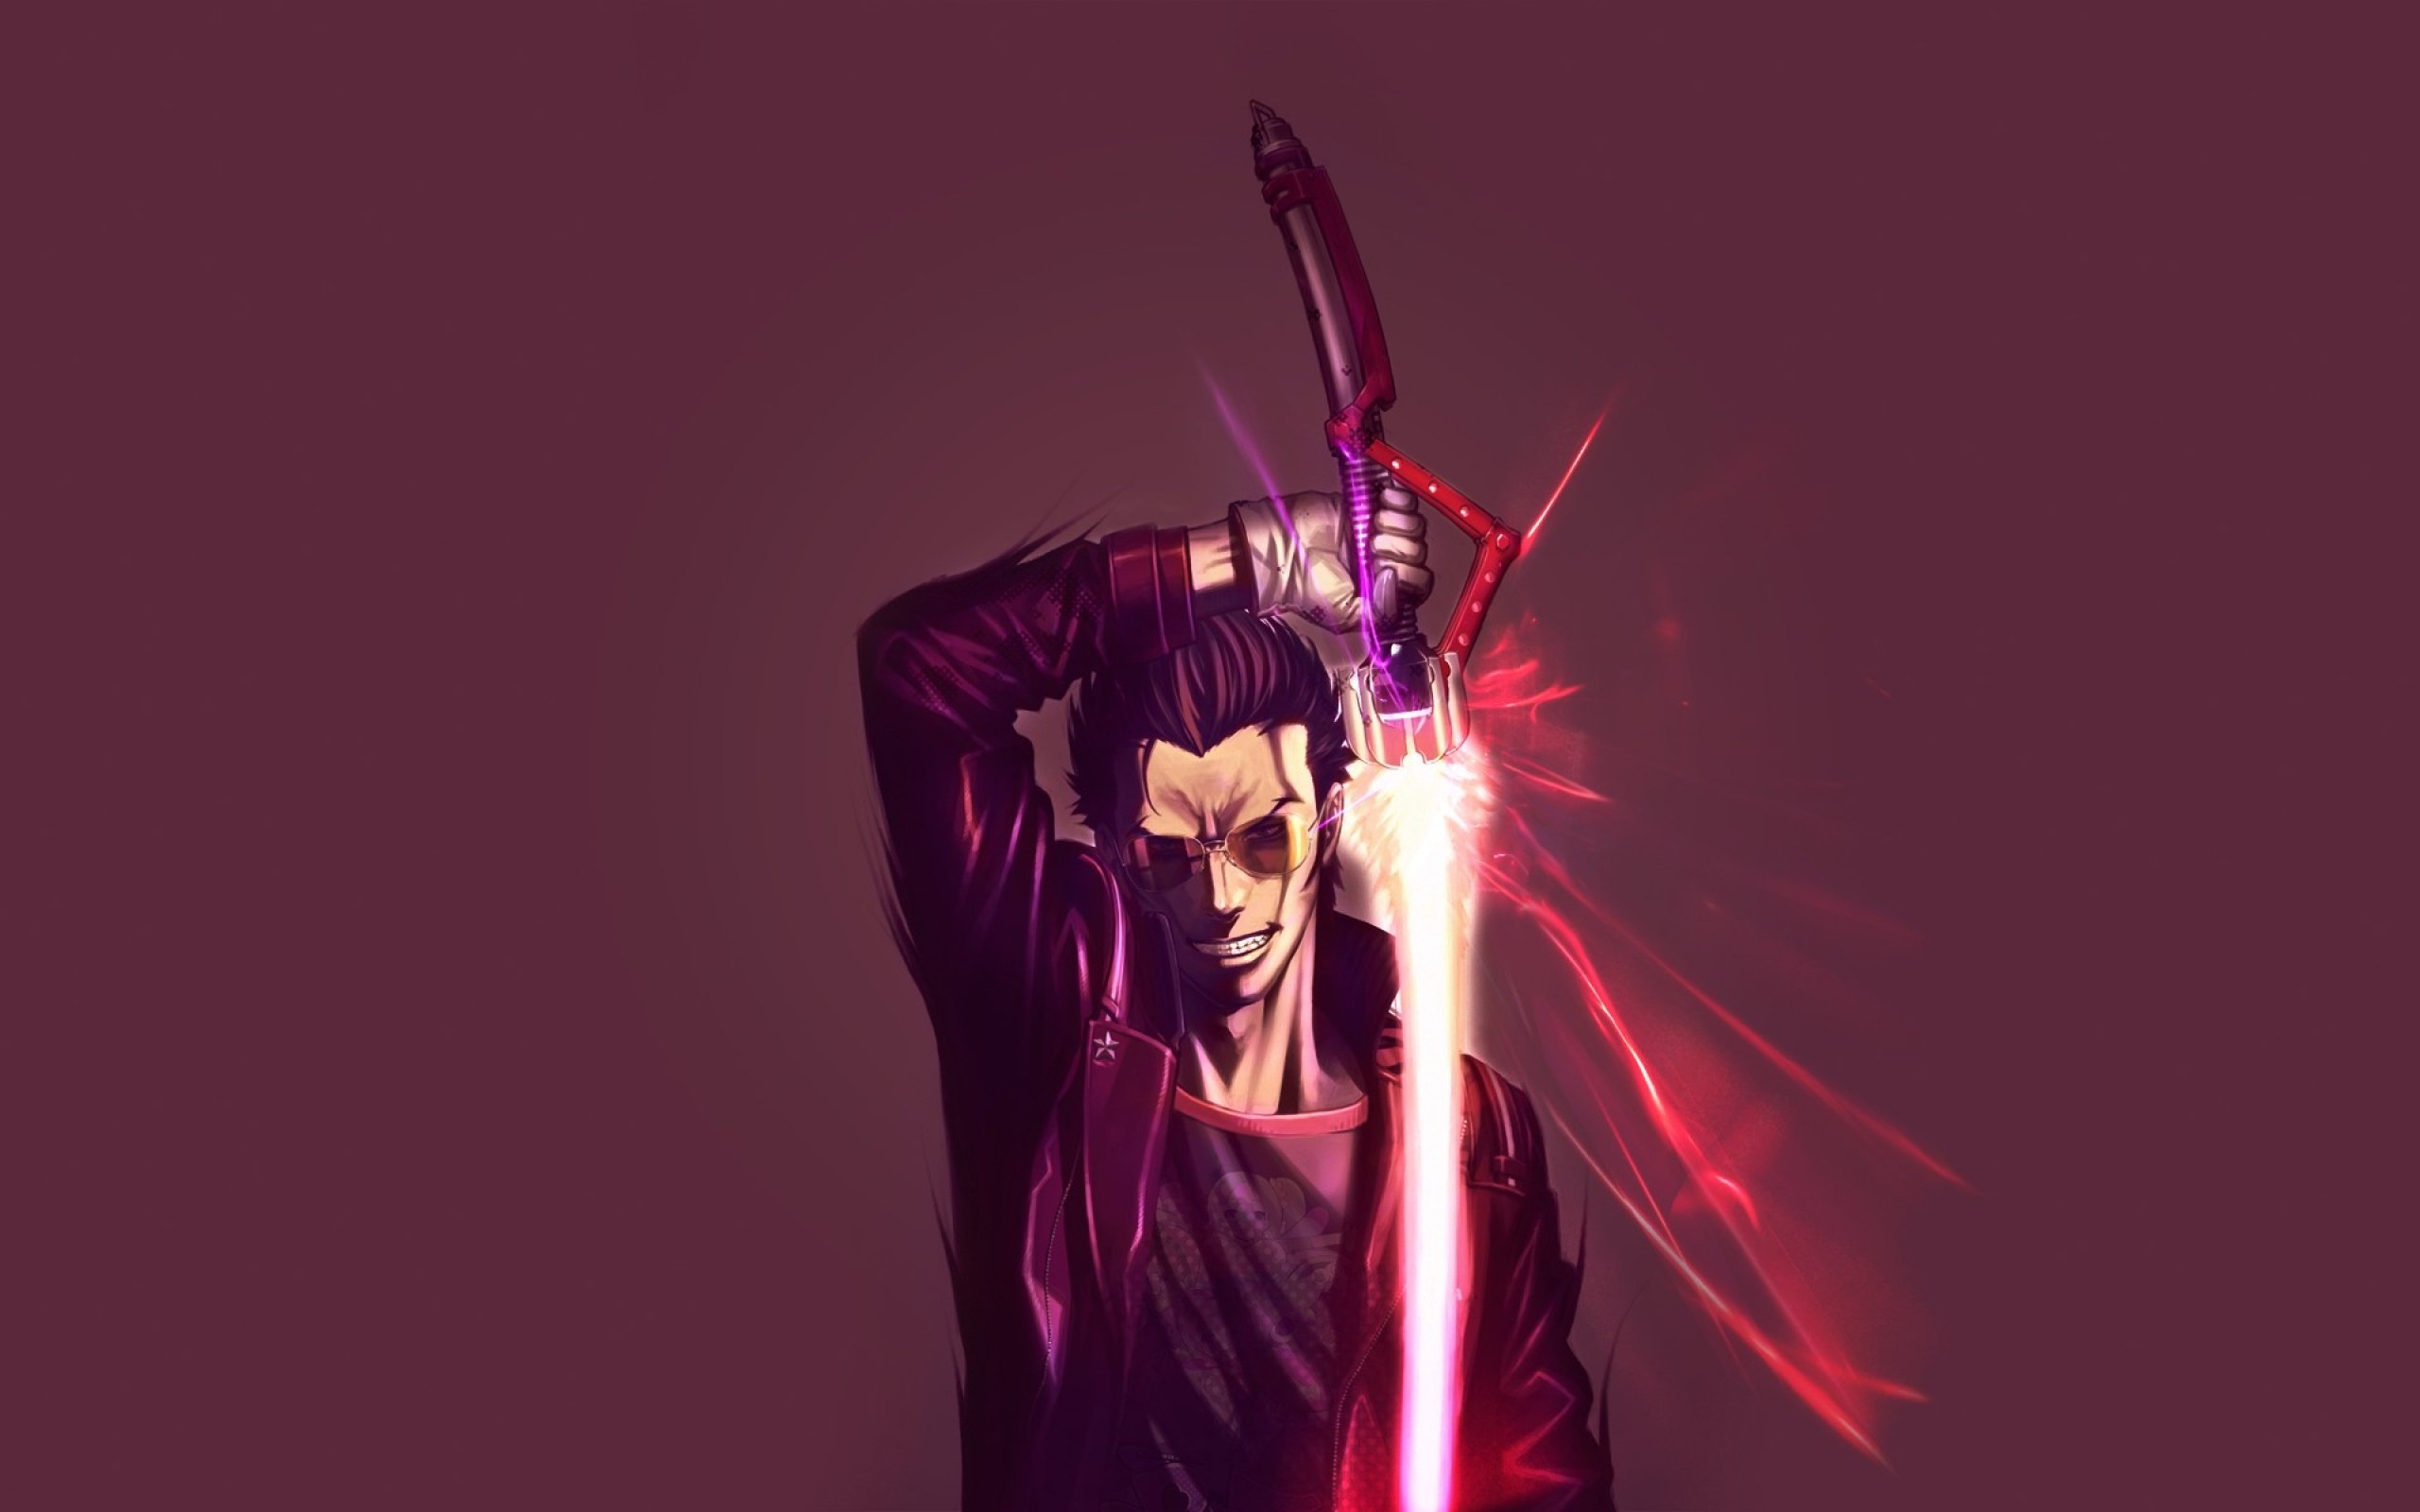 Travis Touchdown from No More Heroes [2560x1600] wallpapers 2560x1600